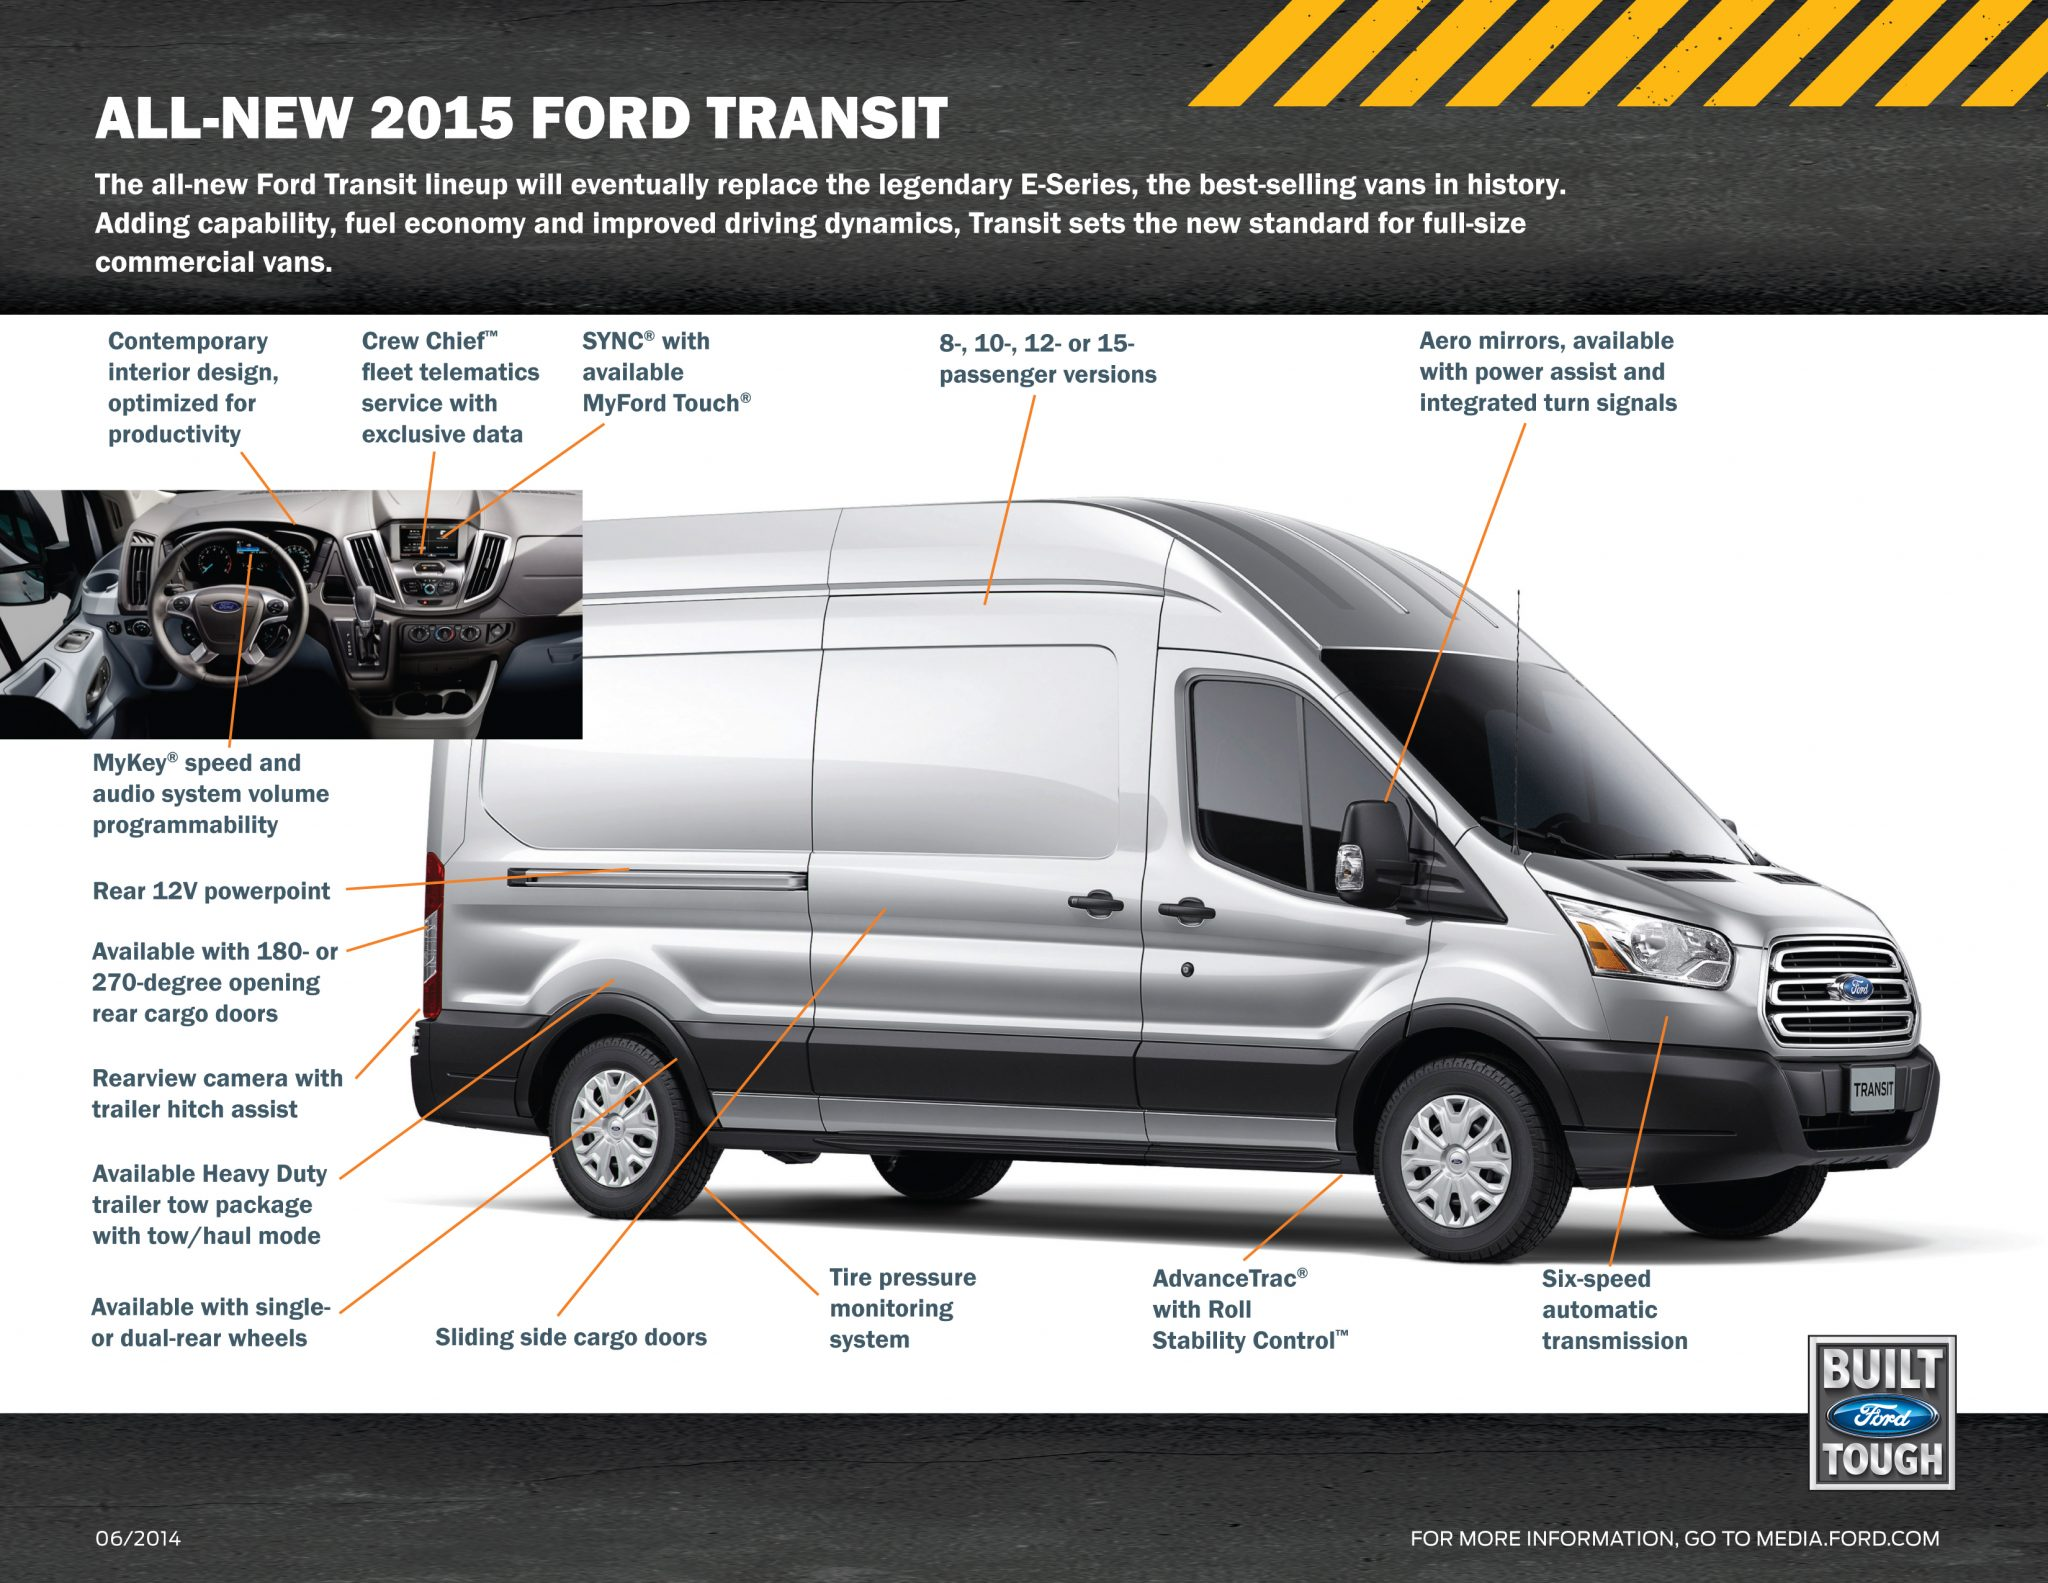 2015 Ford Transit Is Best In Class In A Ton Of Ways The